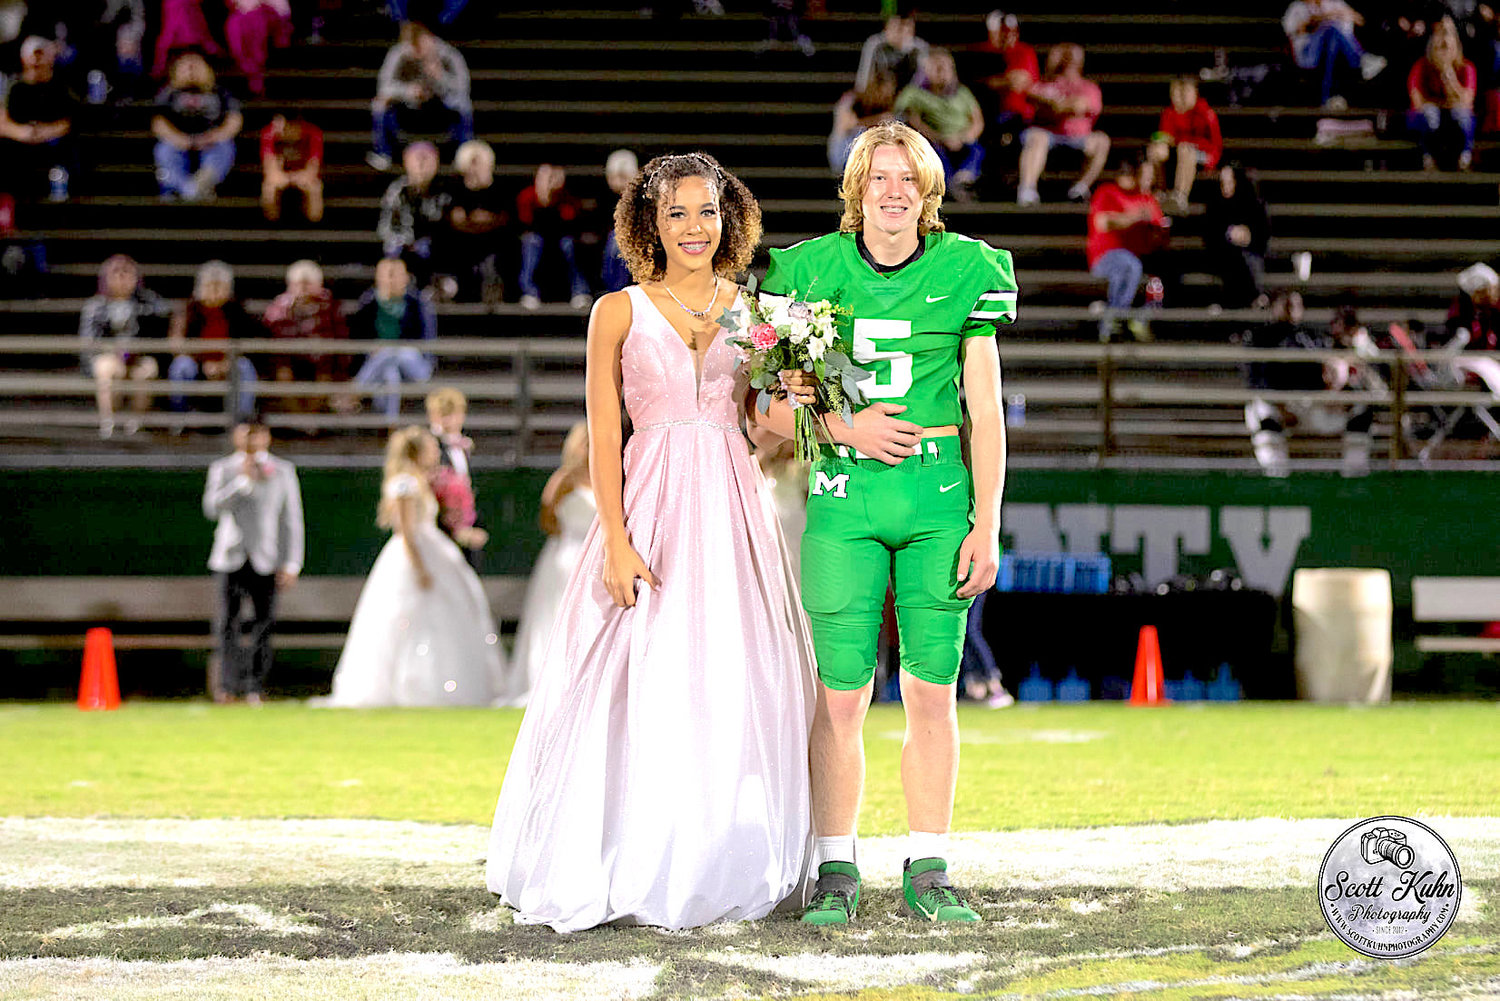 Freshman Princess Skyler Mahoney and escort Judah Woodall